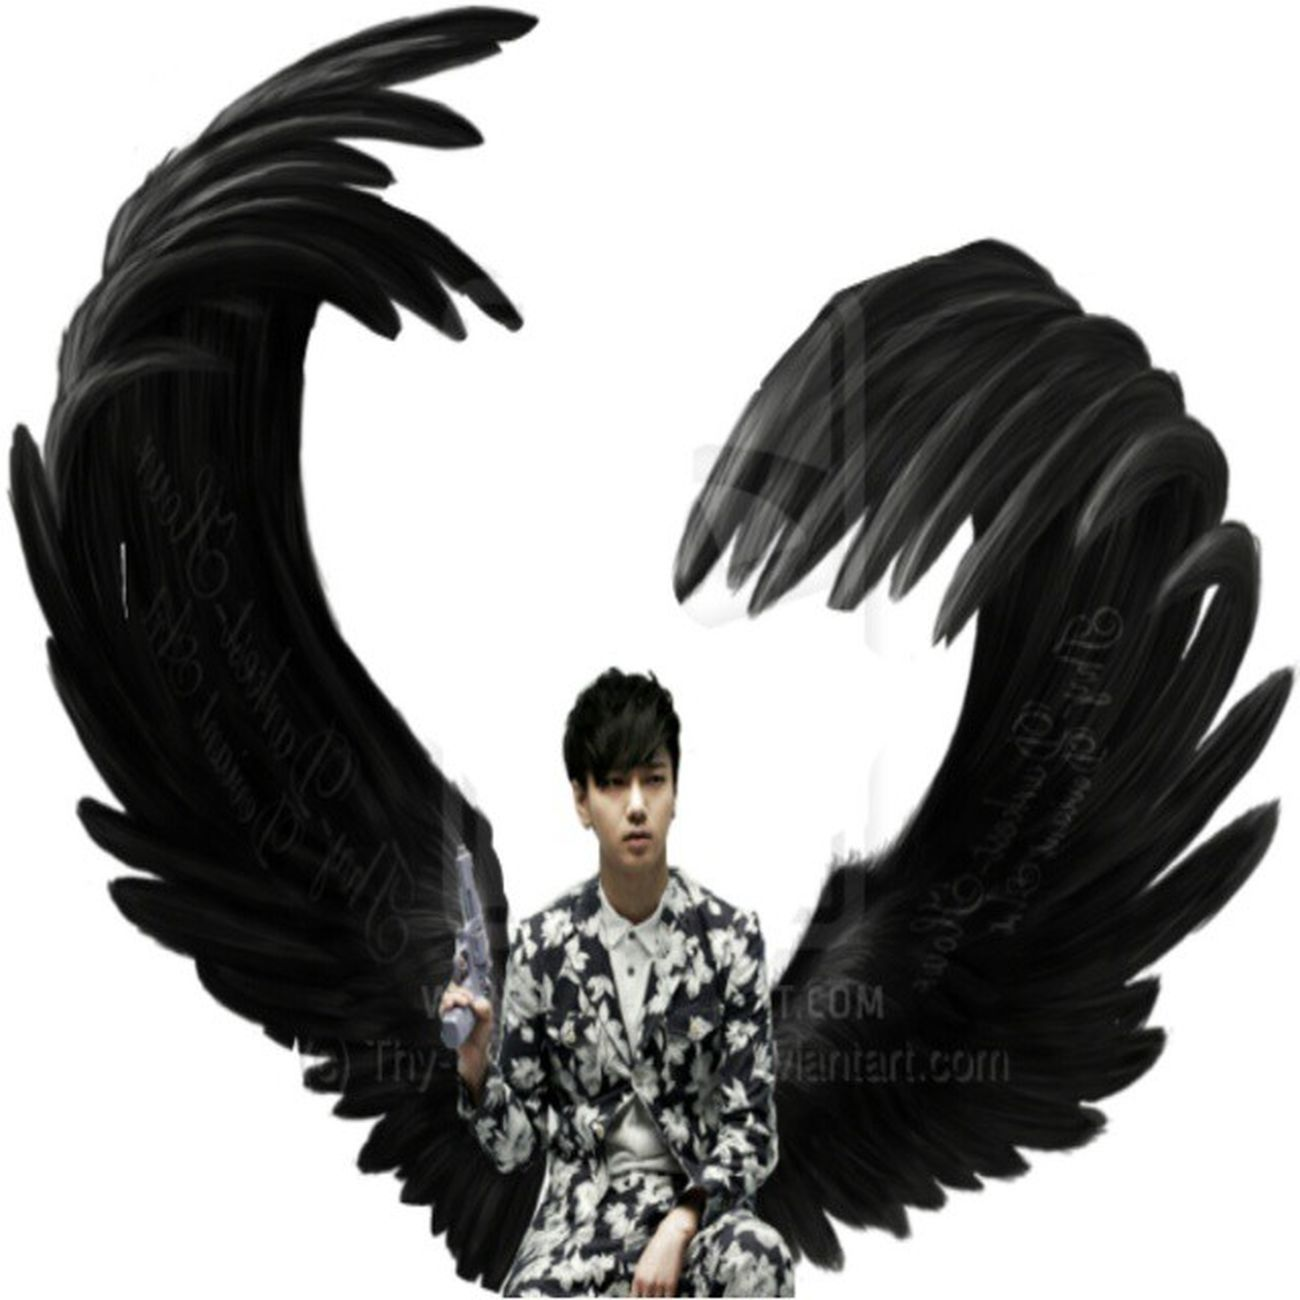 JongWoonStyle Darkangel KIMJONGWOON ...COOL